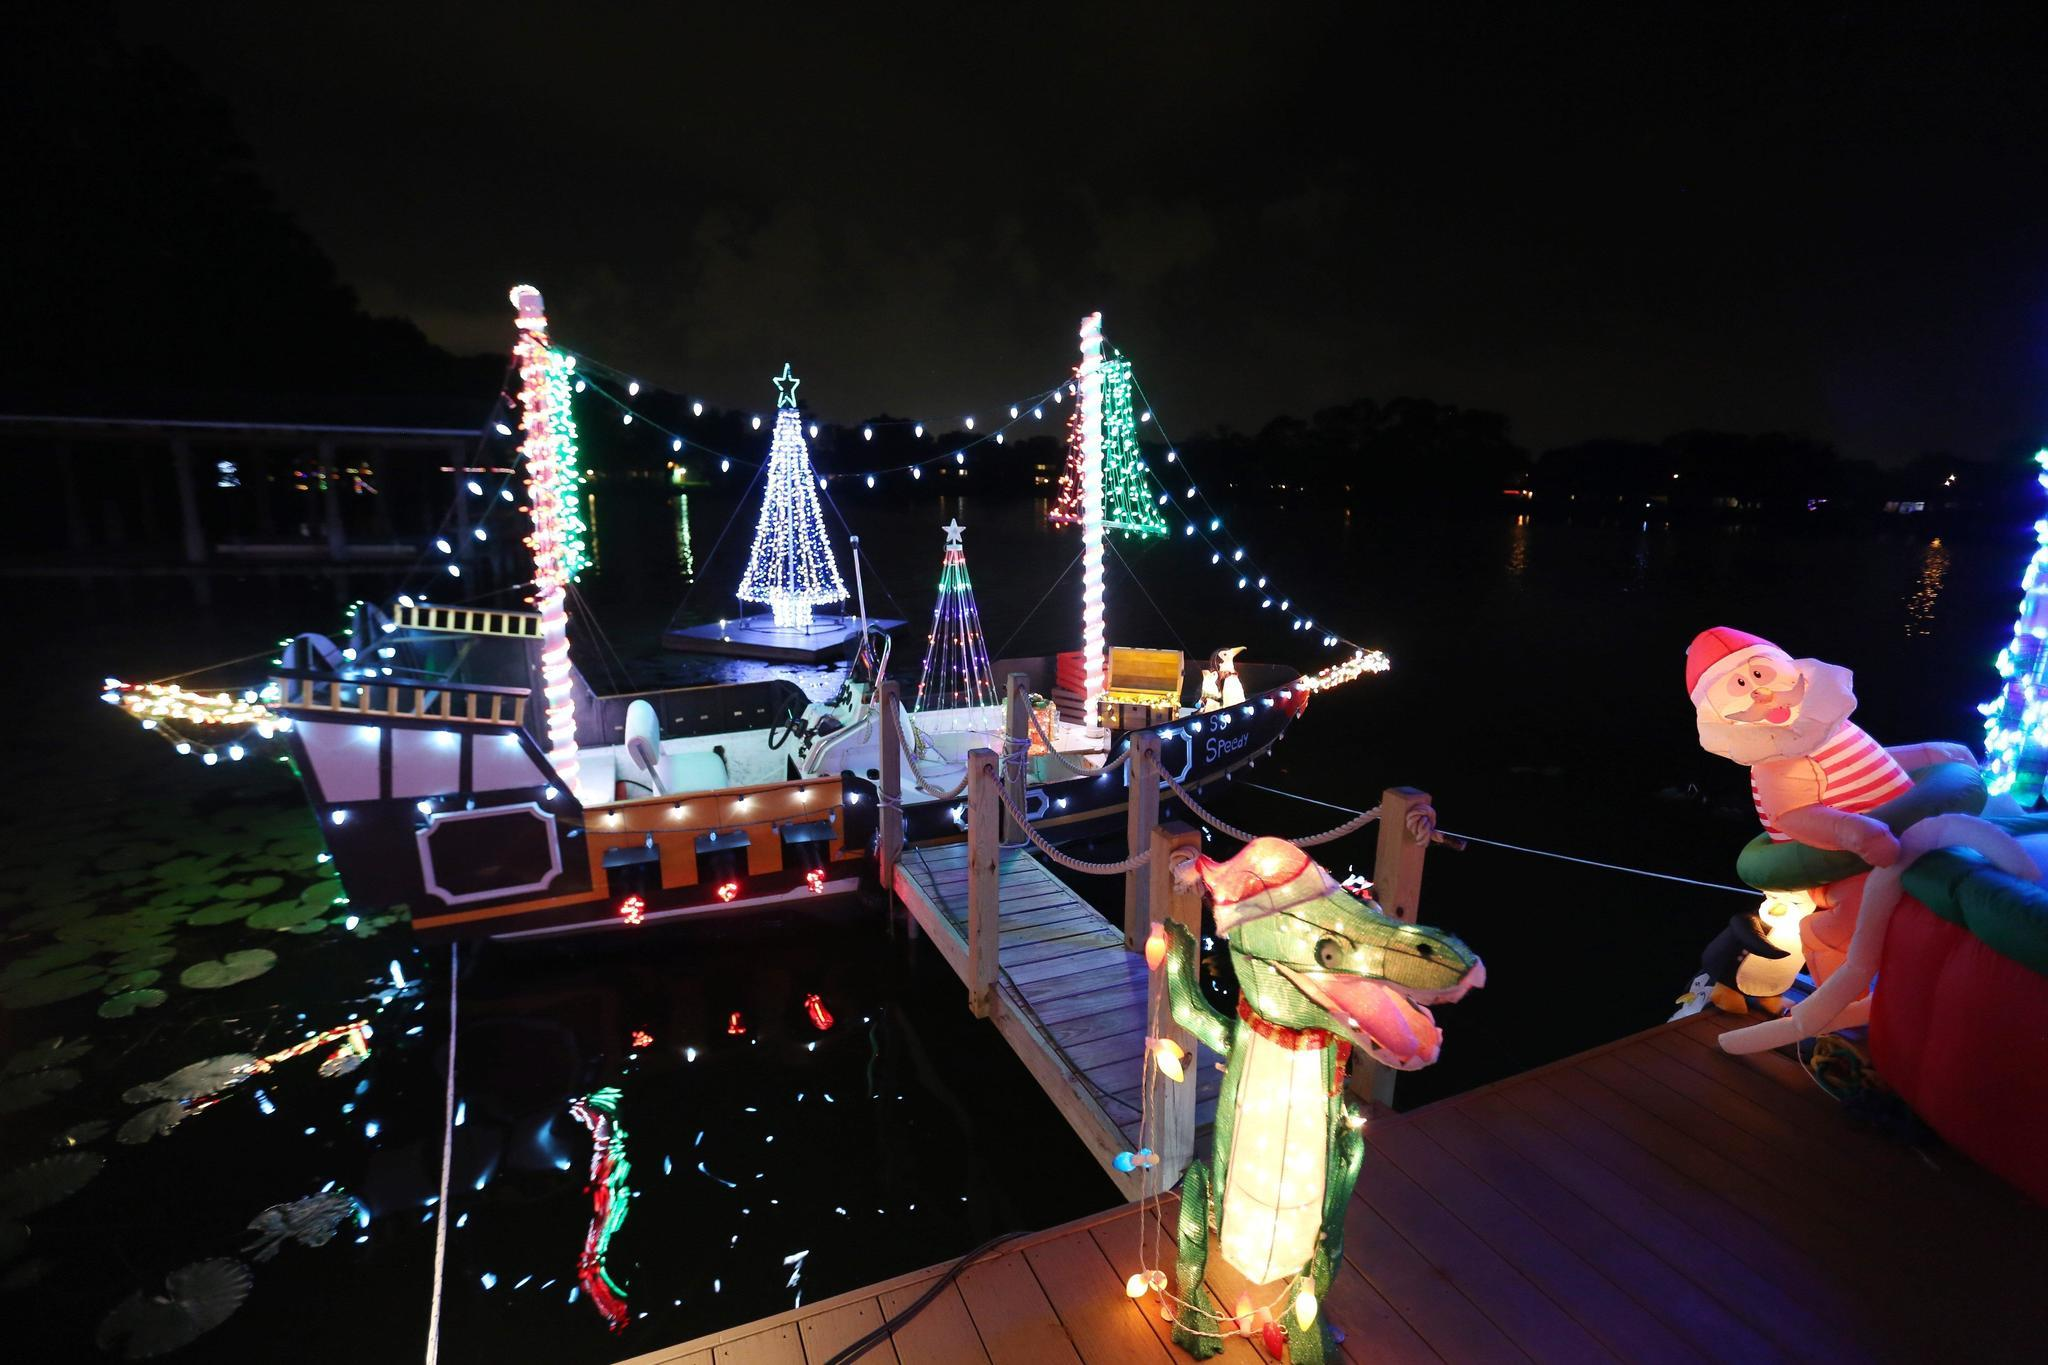 Why do we decorate with christmas lights - Winter Park Home Adorned With 250 000 Christmas Lights Orlando Sentinel